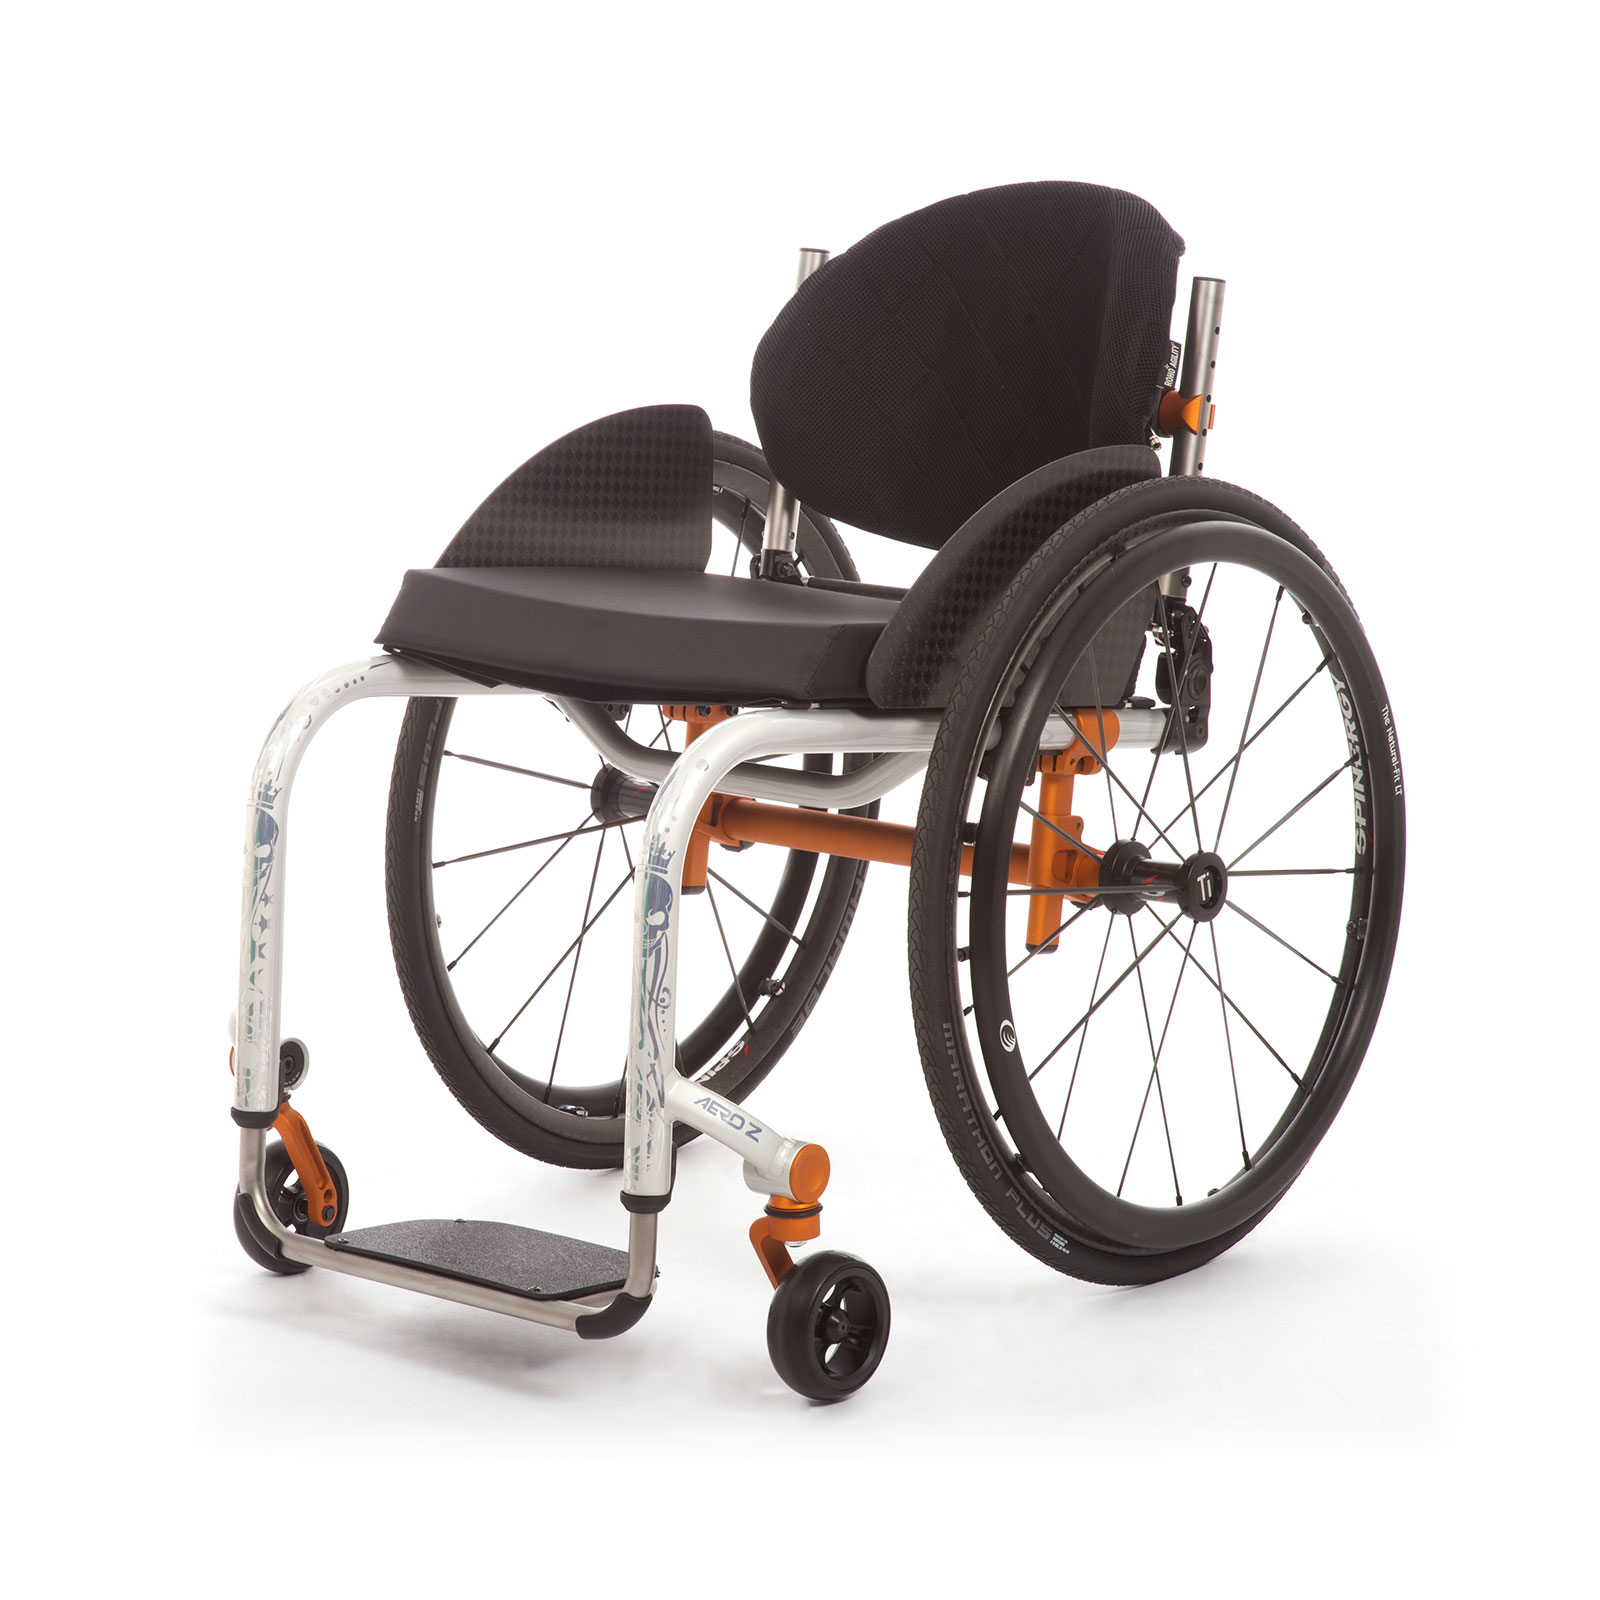 The Left Front of Wheelchair.